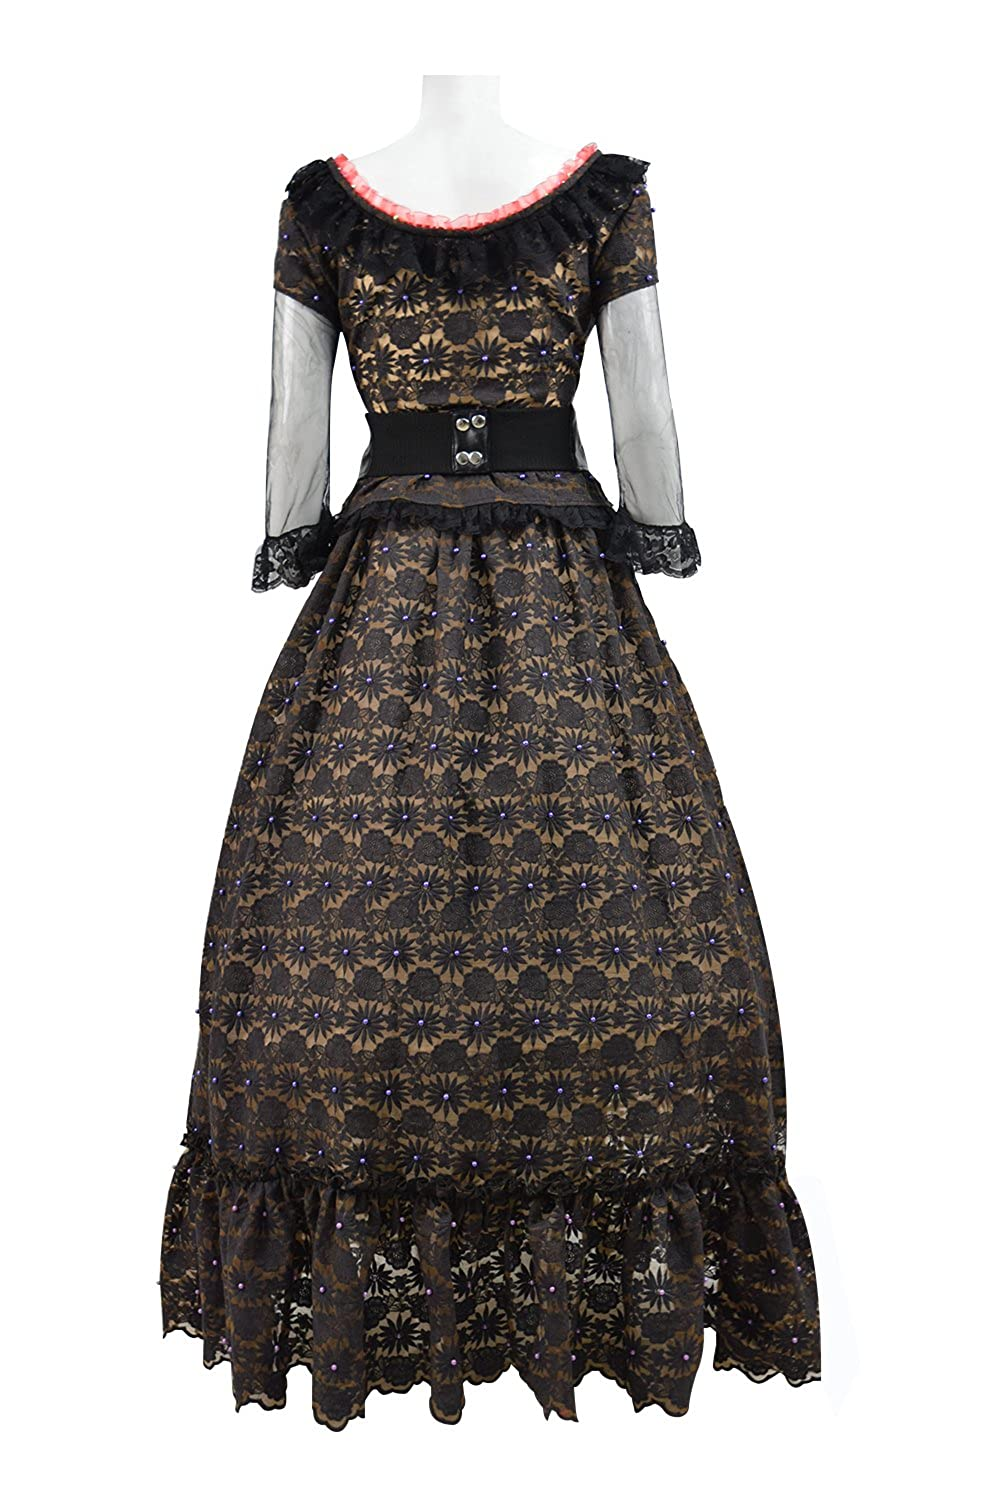 Make an Easy Victorian Costume Dress with a Skirt and Blouse Mrs. Lovett Costume Halloween Cosplay Party Black Classic Lolita Dress $99.99 AT vintagedancer.com